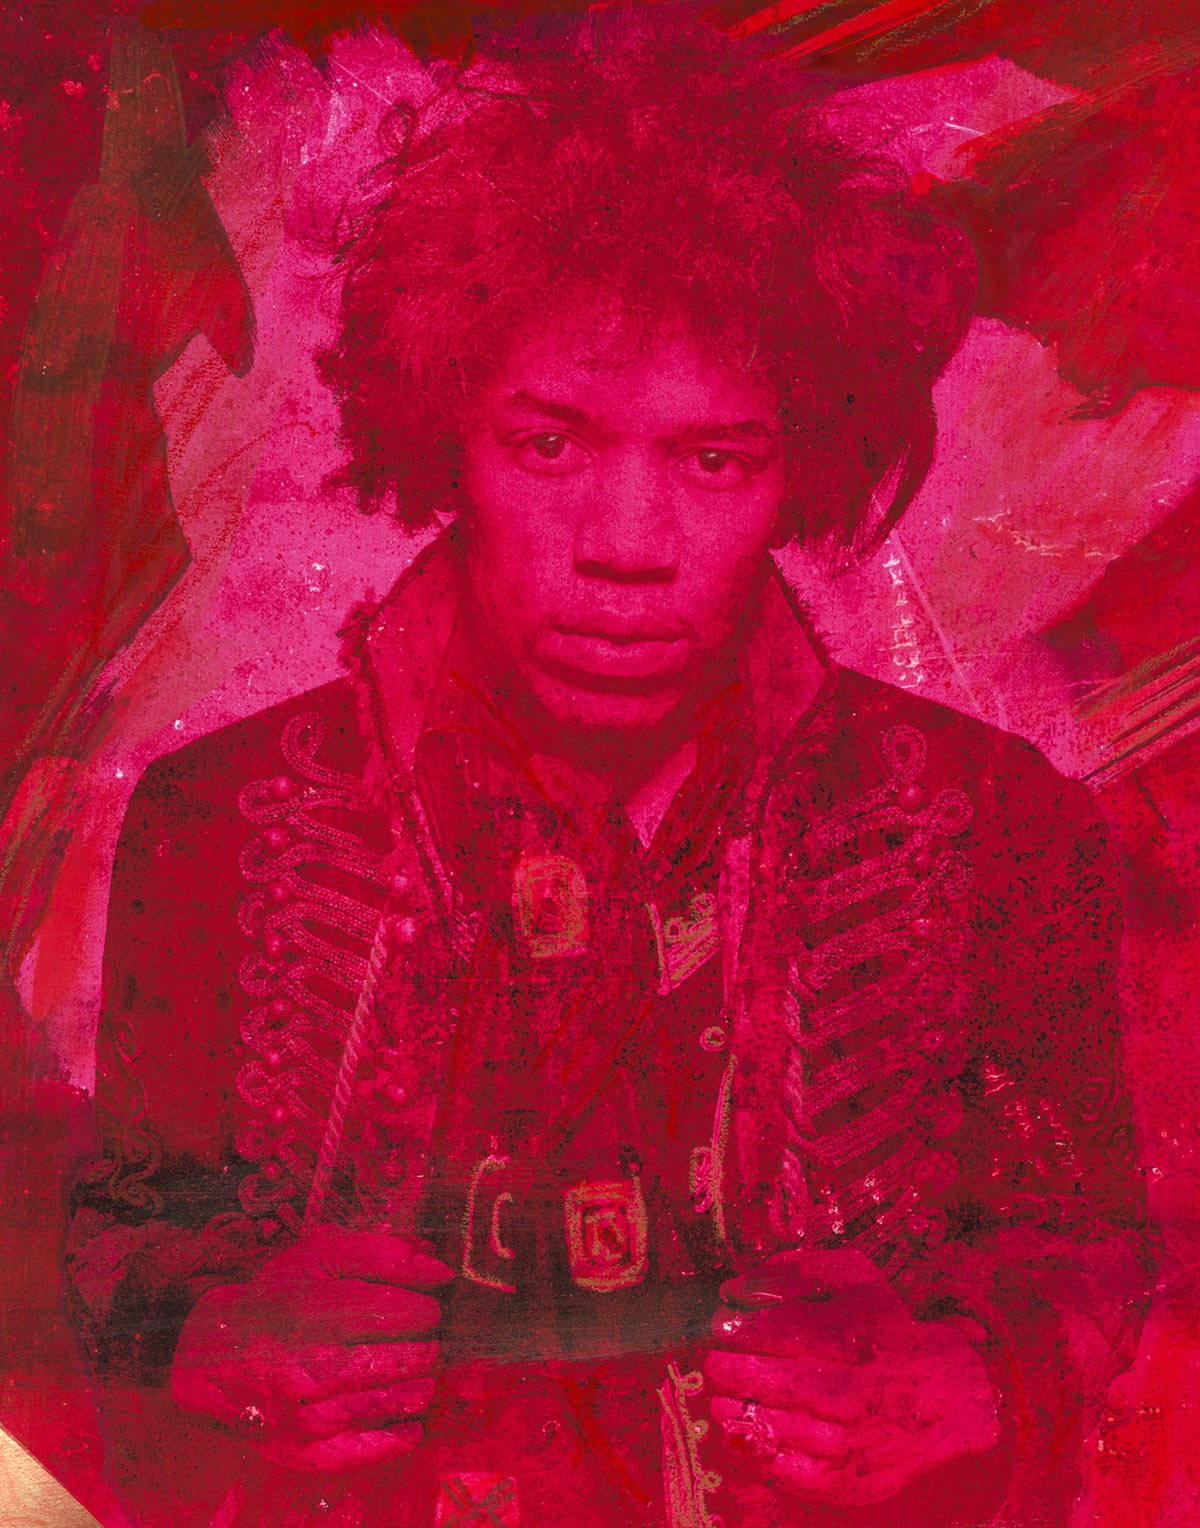 Mr Jimi Neon Red 2017 featuring Jimi Hendrix